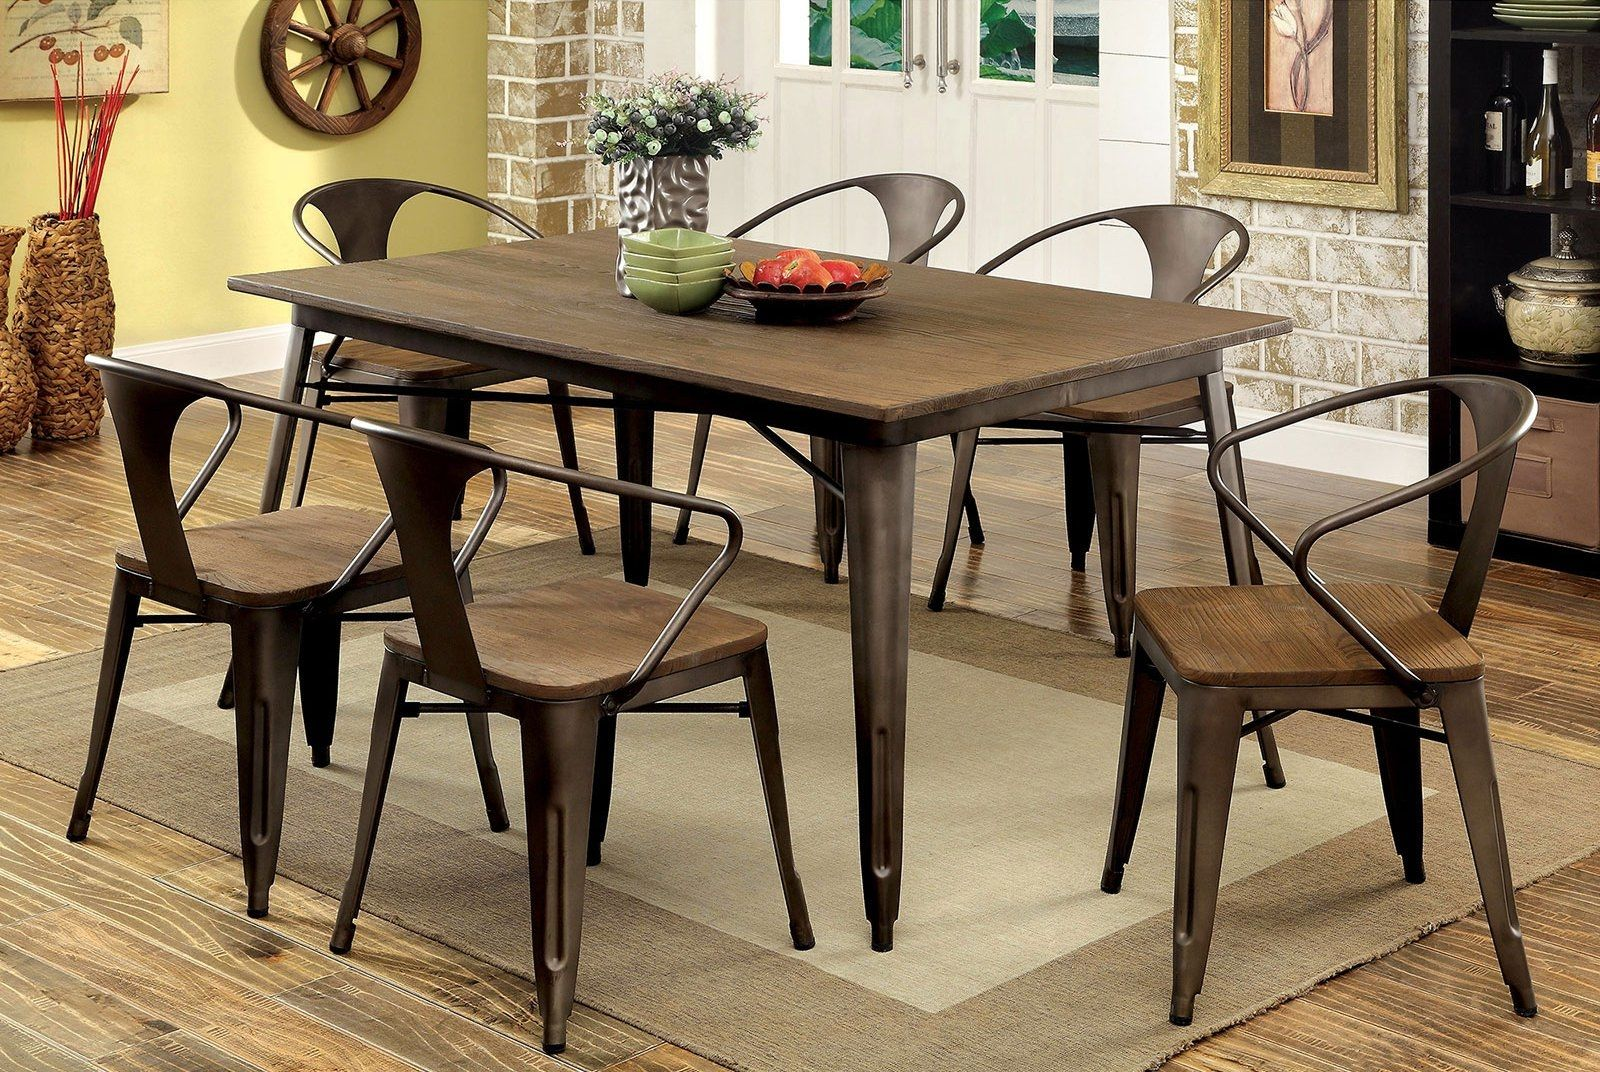 Cooper I Table Cm3529t Furniture Of America Dining Room Sets Dining Table Industrial Dining Chairs Industrial Dining Sets